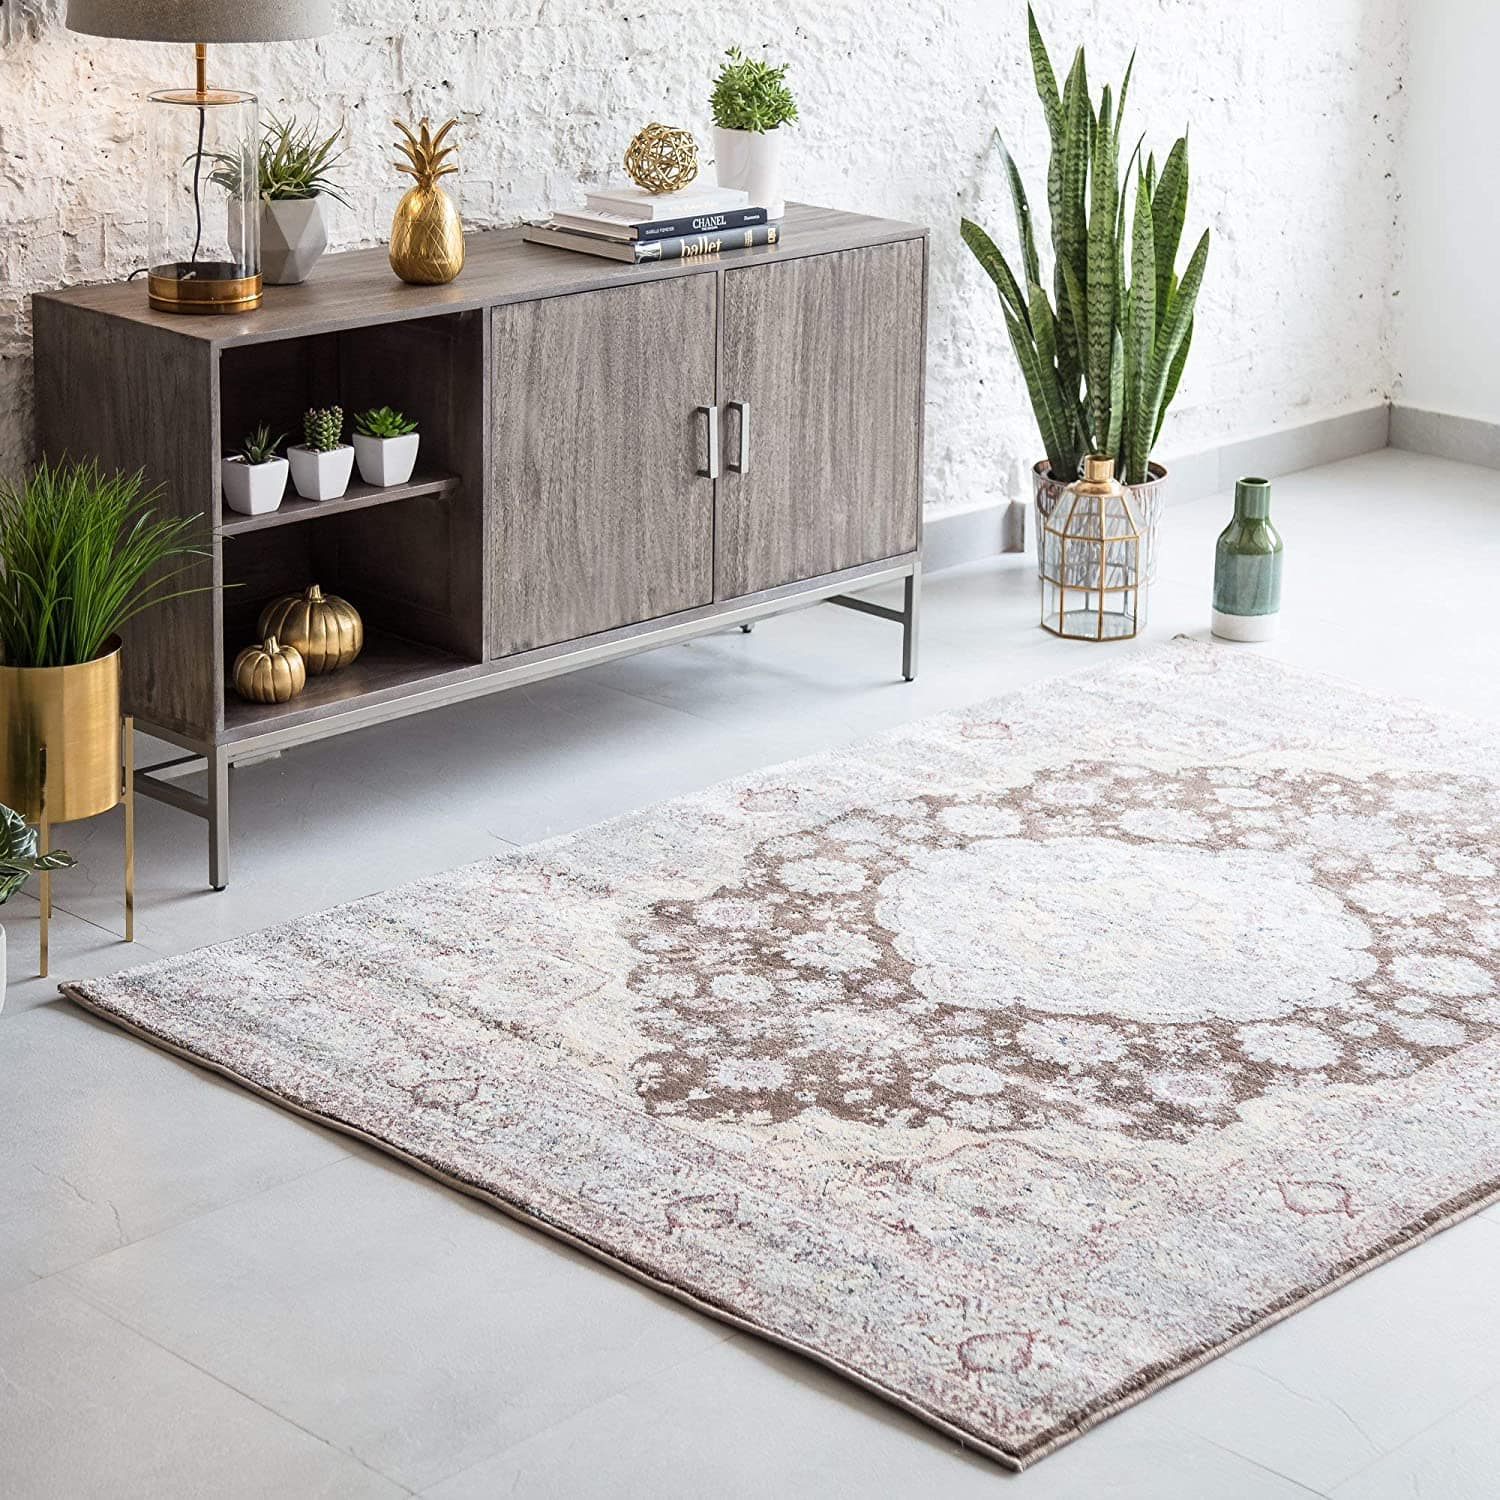 """5'3"""" x 7'6"""" Madeleine Home Delphine Microfiber Area Rug (Beige, Blue, or Gray) $43 + Free Shipping $49+"""